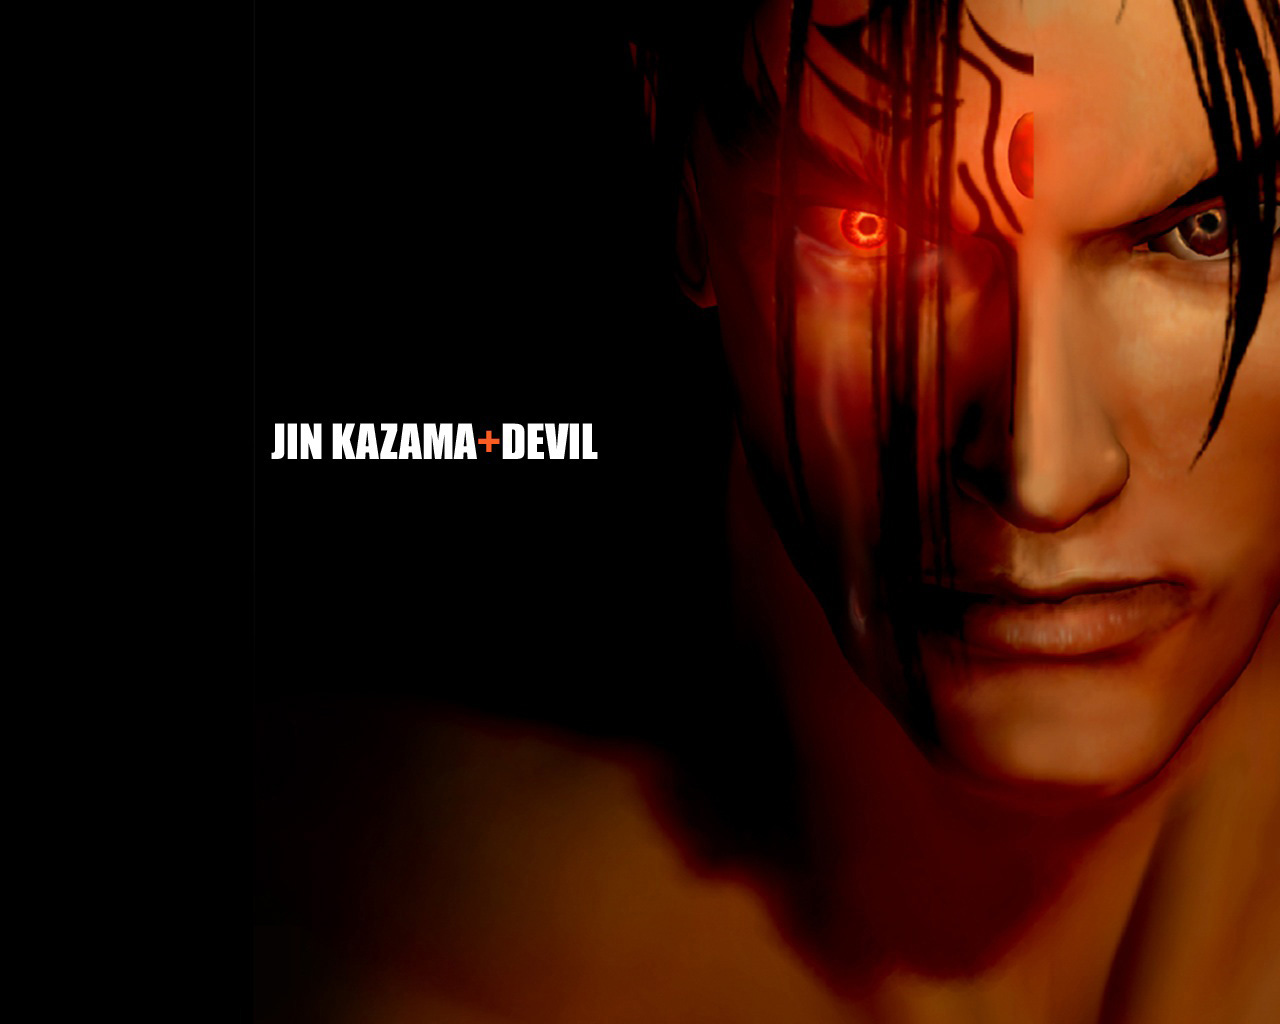 tekken 5 wallpapers - wallpapersafari